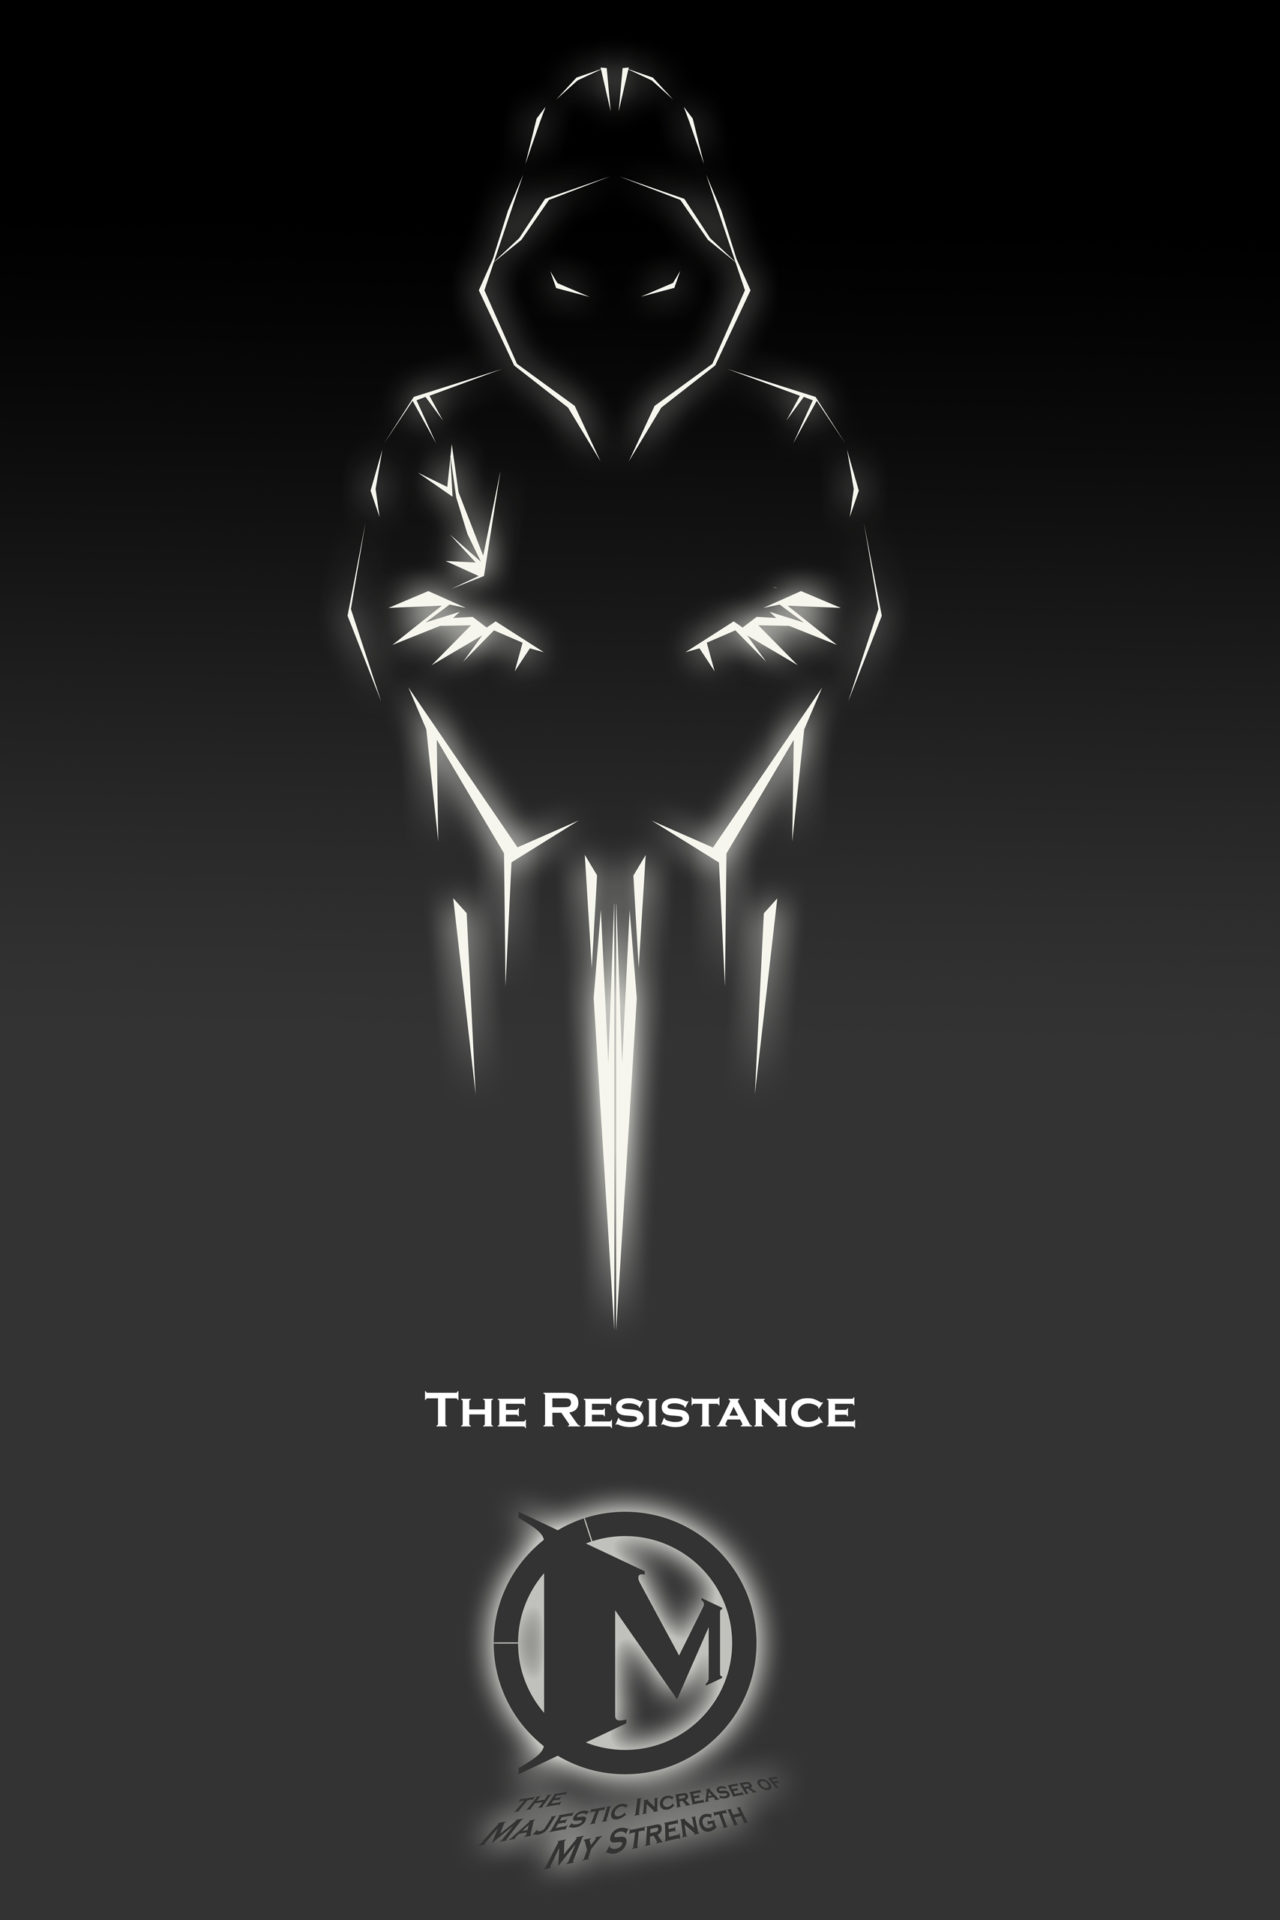 https://oziecargile.com/wp-content/uploads/2020/03/mims.characters.the-resistance.scaled-1280x1920.jpg